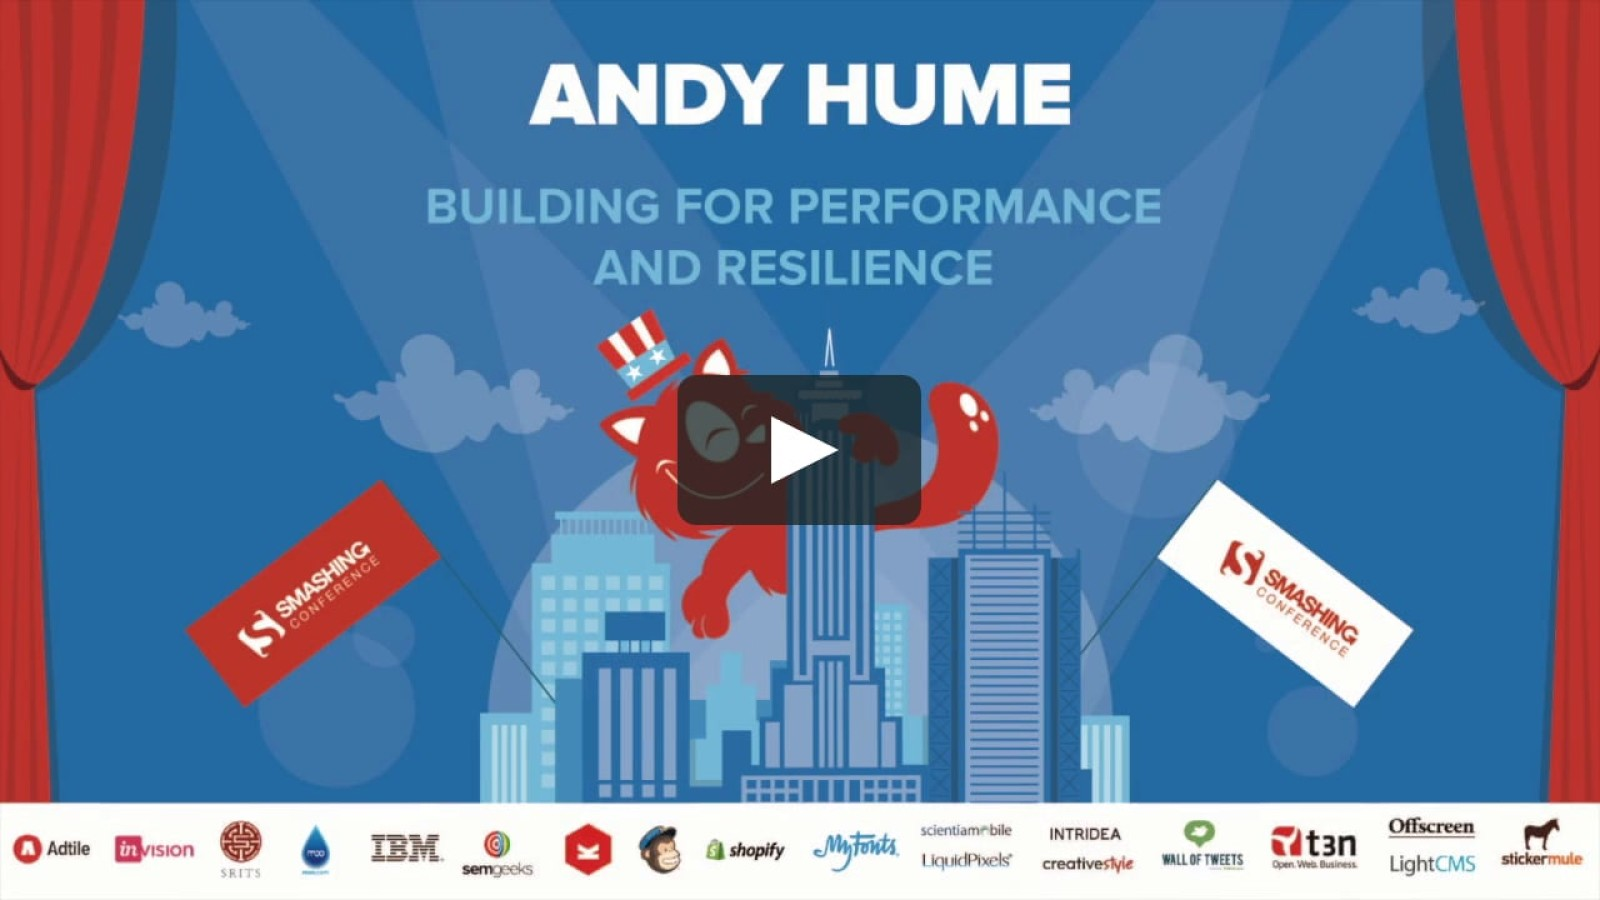 Building for performance and resilience